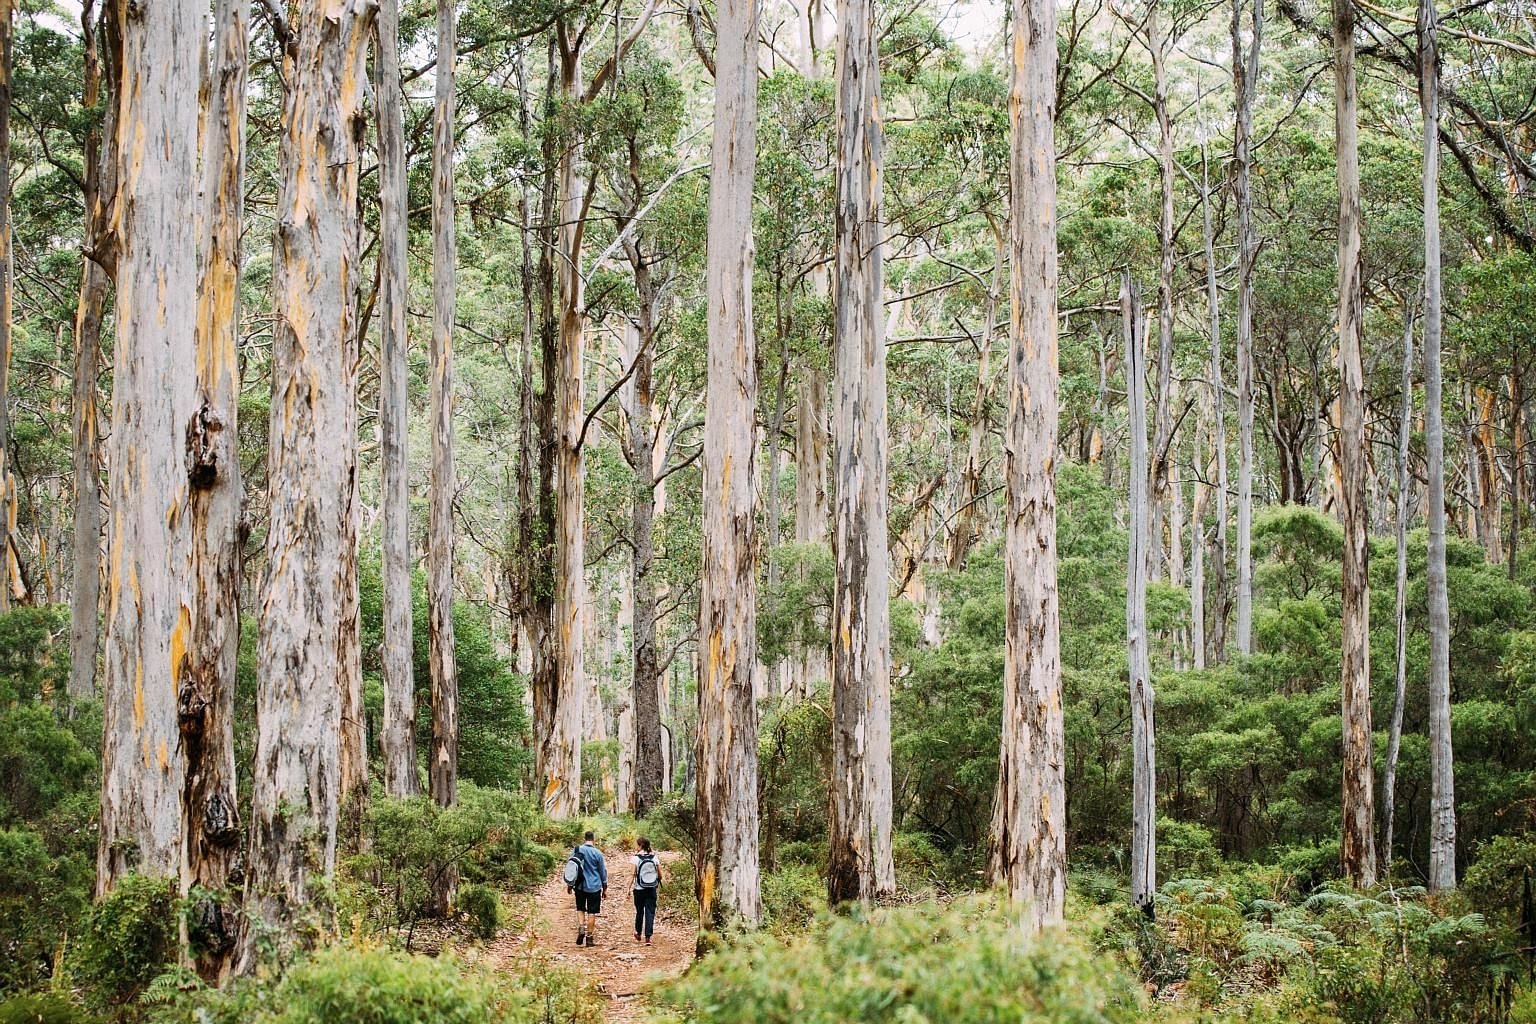 Towering trees abound in the Boranup Karri Forest, creating a magical and timeless feel about the place.